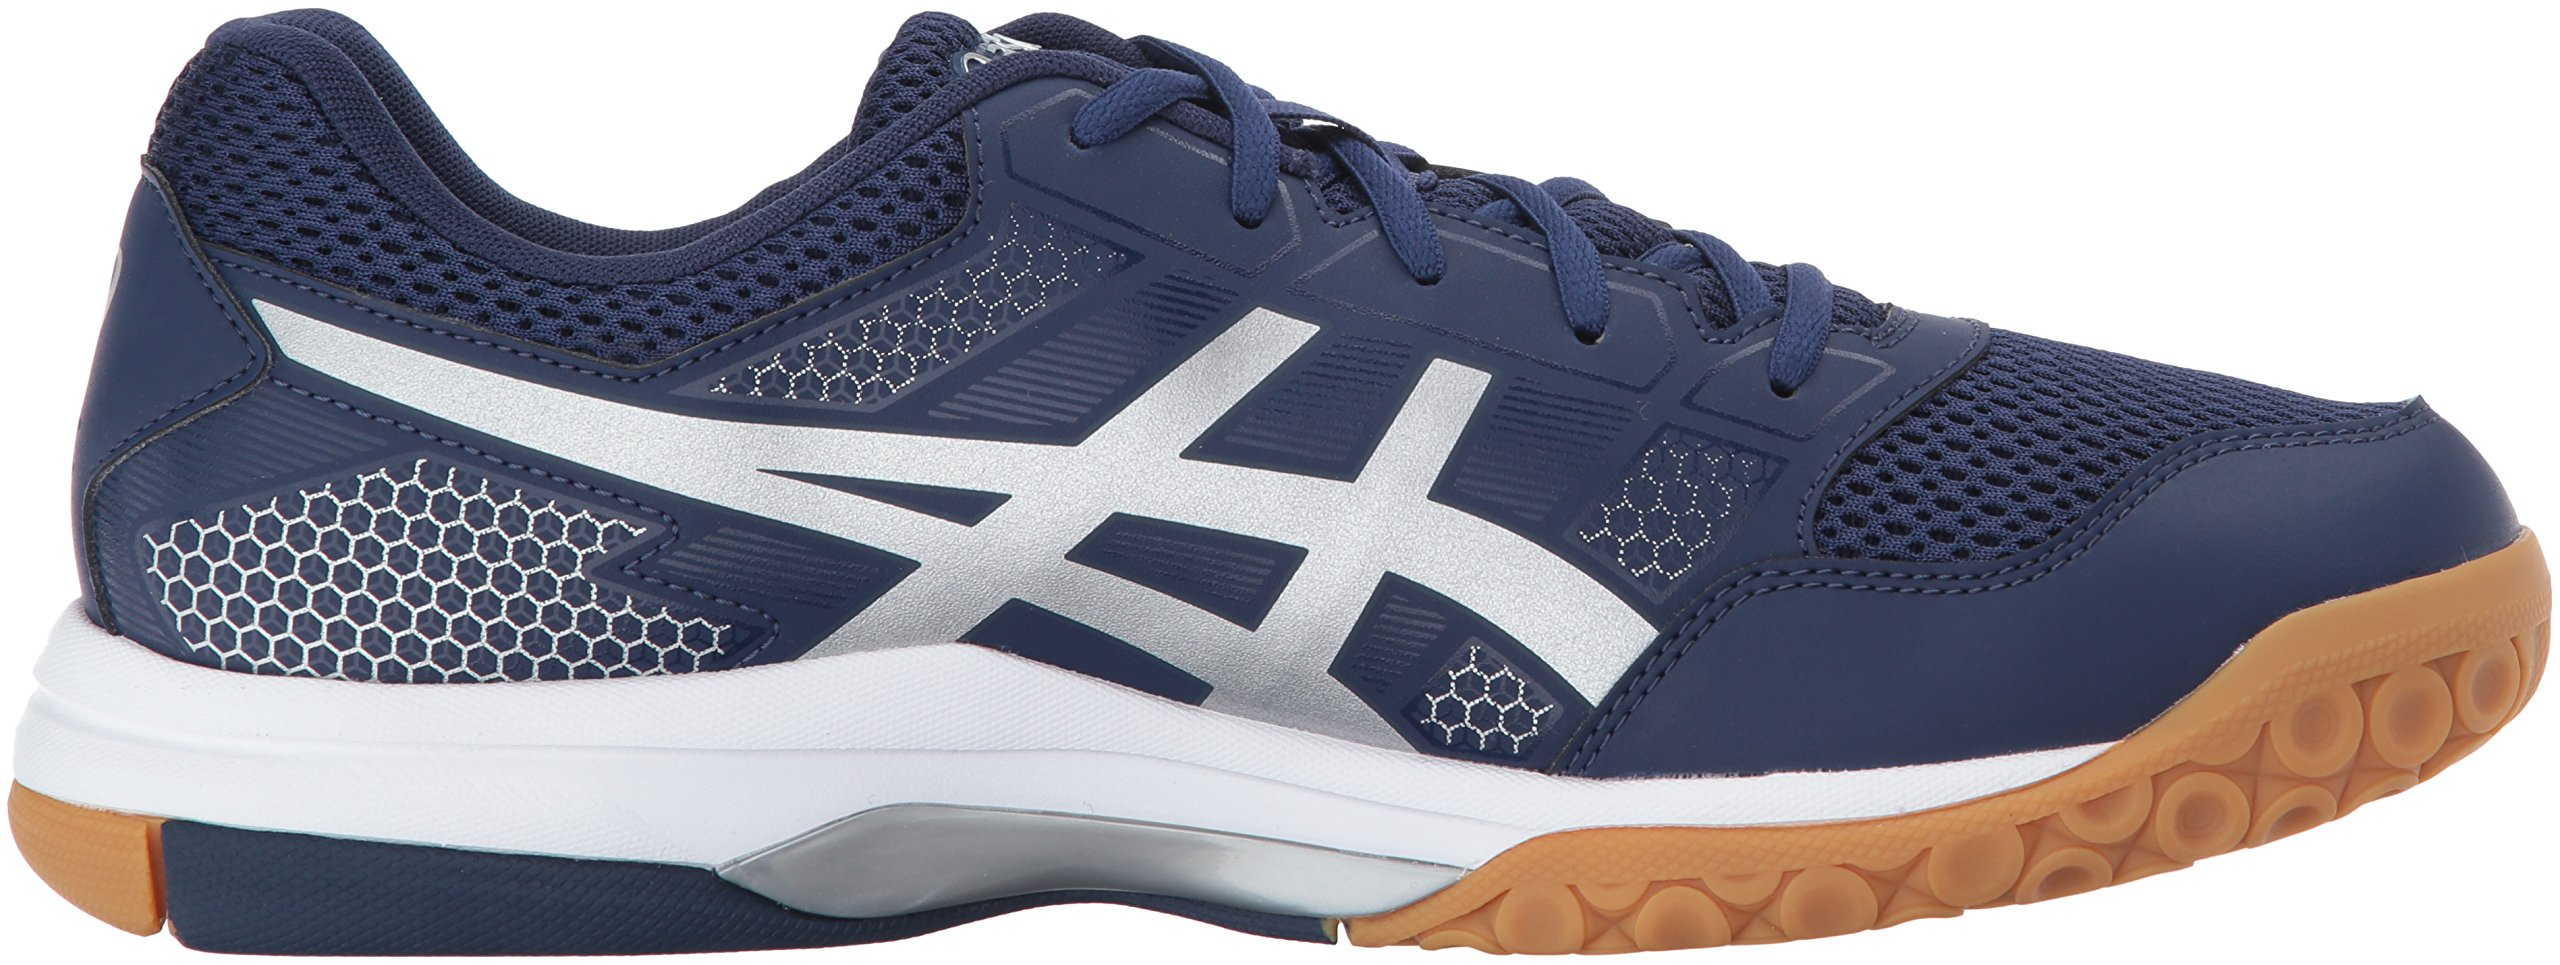 37125368357 ASICS Mens Gel-Rocket 8 Volleyball Shoe Indigo Blue/Silver/White 8 ...